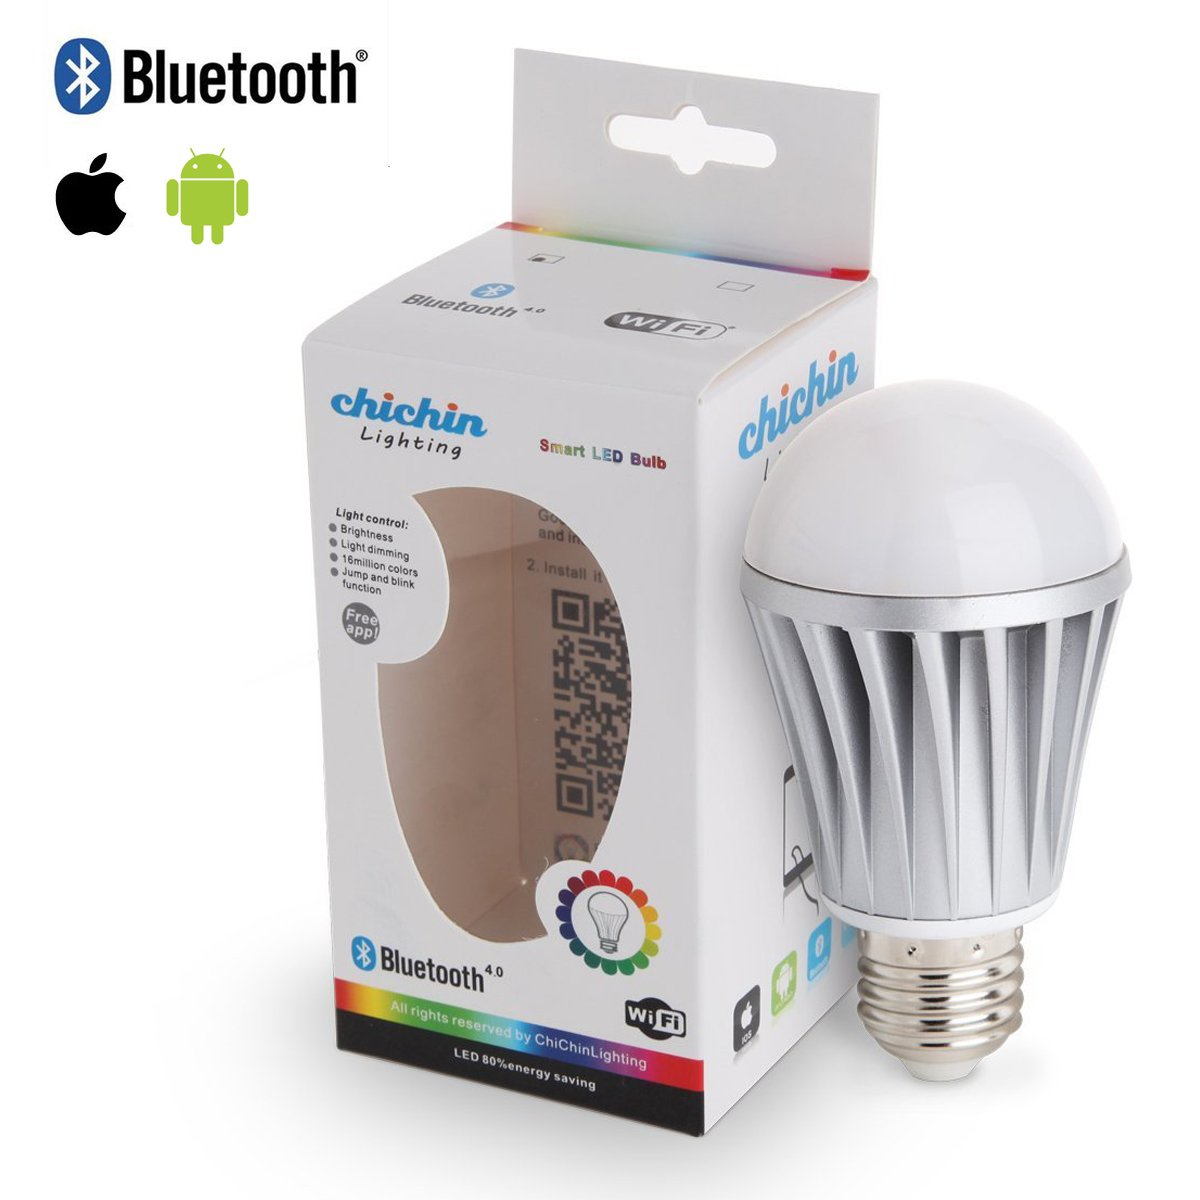 iphone controlled lighting. ChiChinLighting® E26 7w Bluetooth LED Bulb E27 Light RGB Dimmable Smart Controlled By IOS Apple Iphone Ipad Android Samsung HTC Lighting E